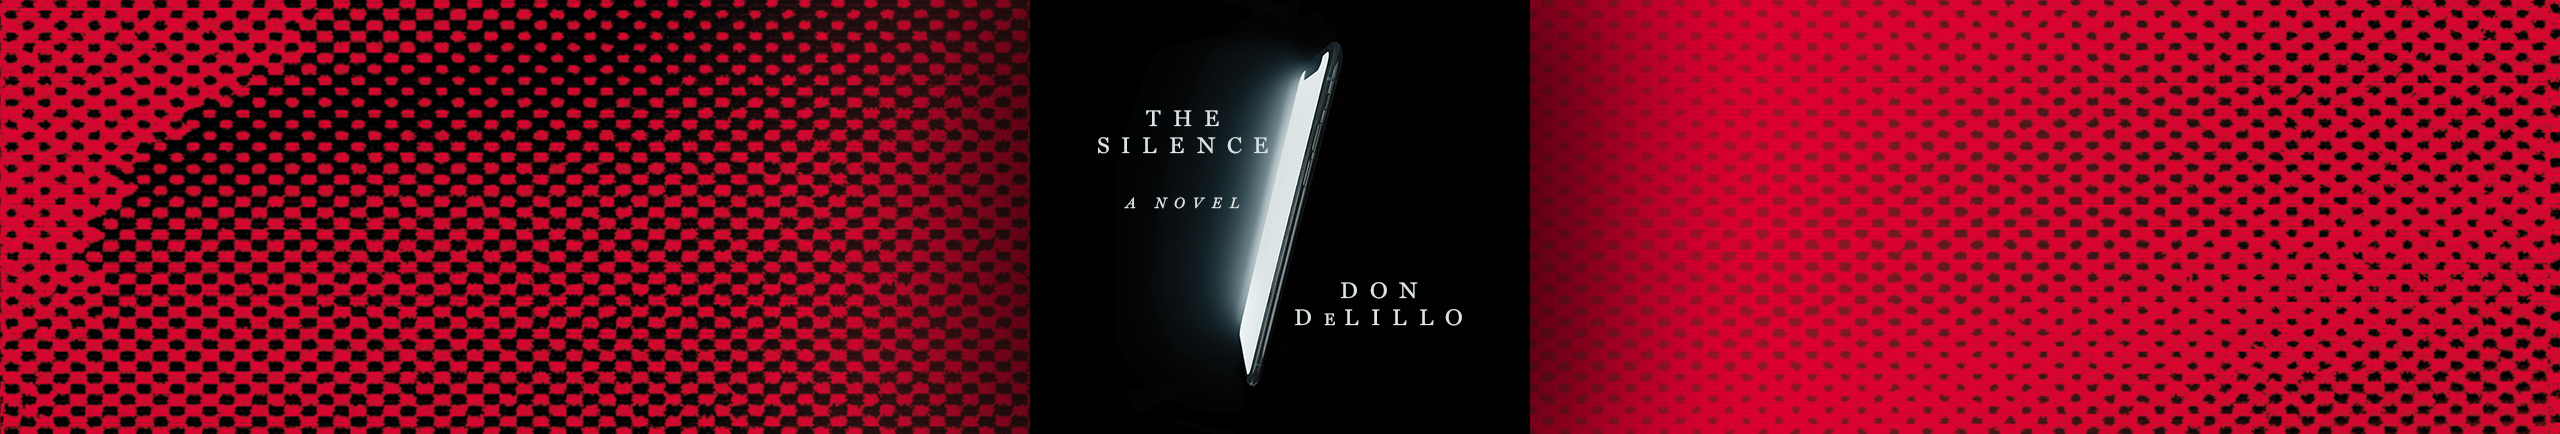 Silence by Don DeLillo